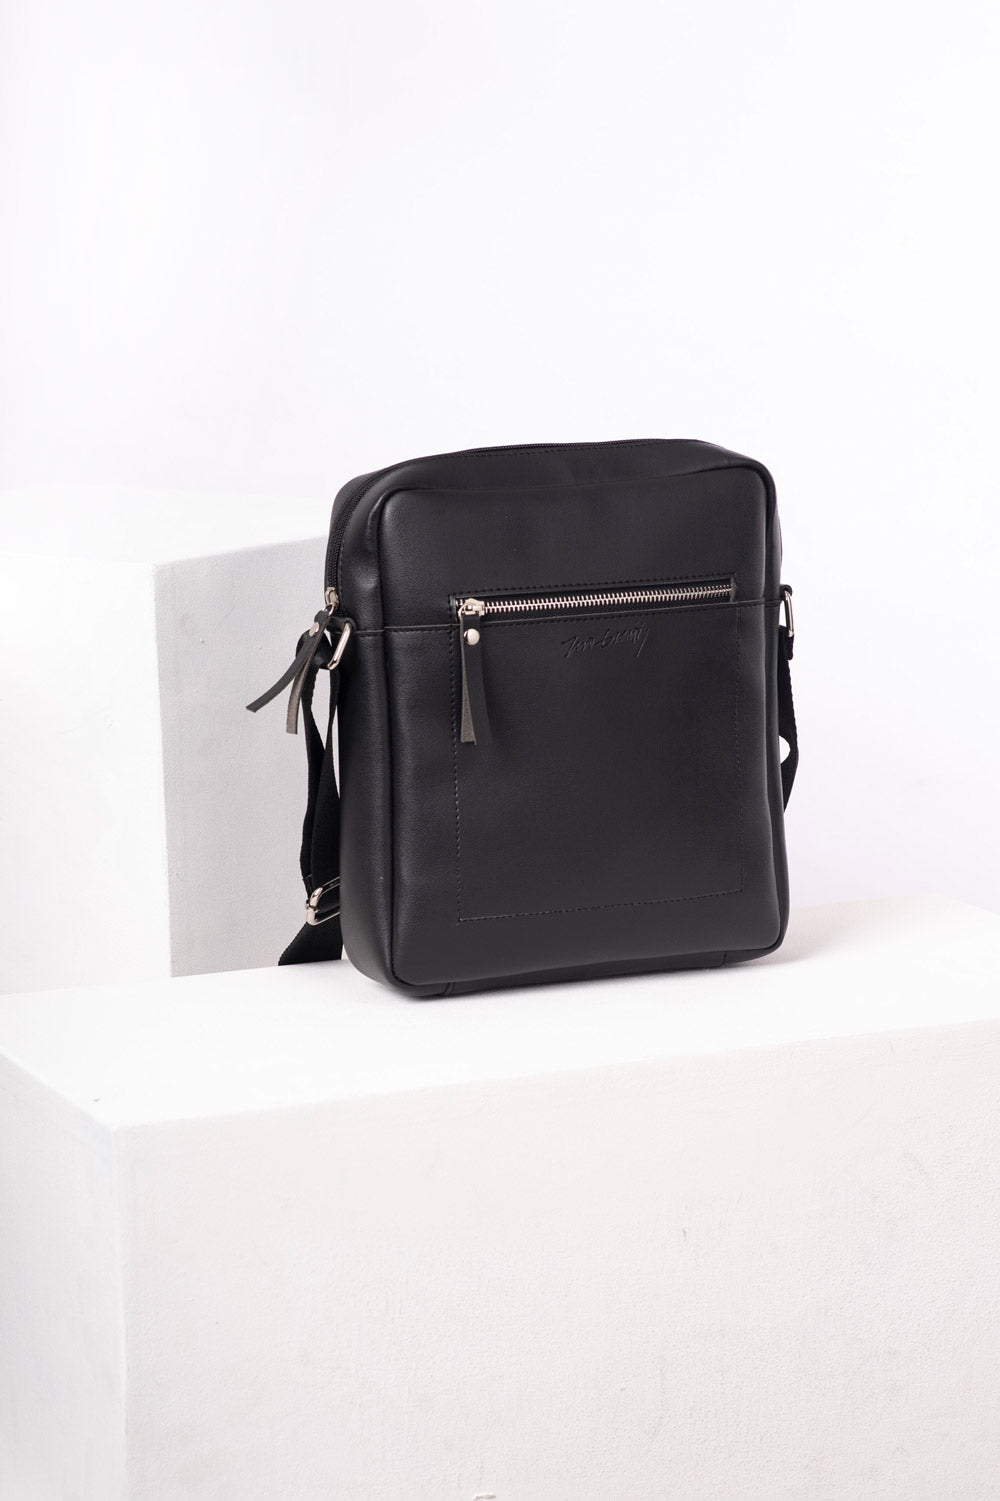 ZG Signature Crossbody Bag